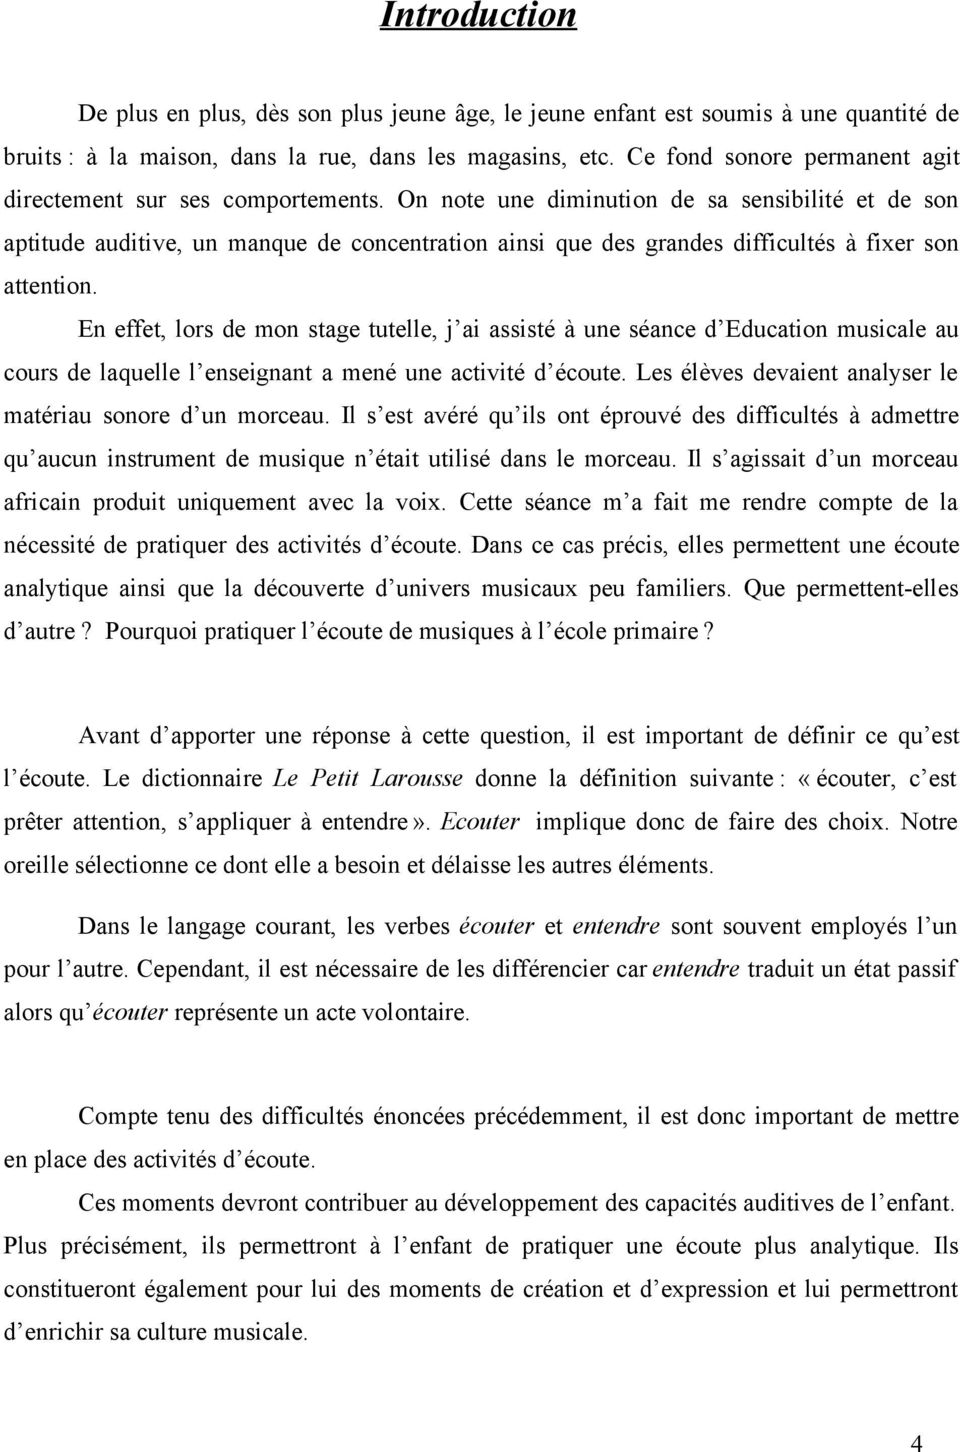 On note une diminution de sa sensibilité et de son aptitude auditive, un manque de concentration ainsi que des grandes difficultés à fixer son attention.